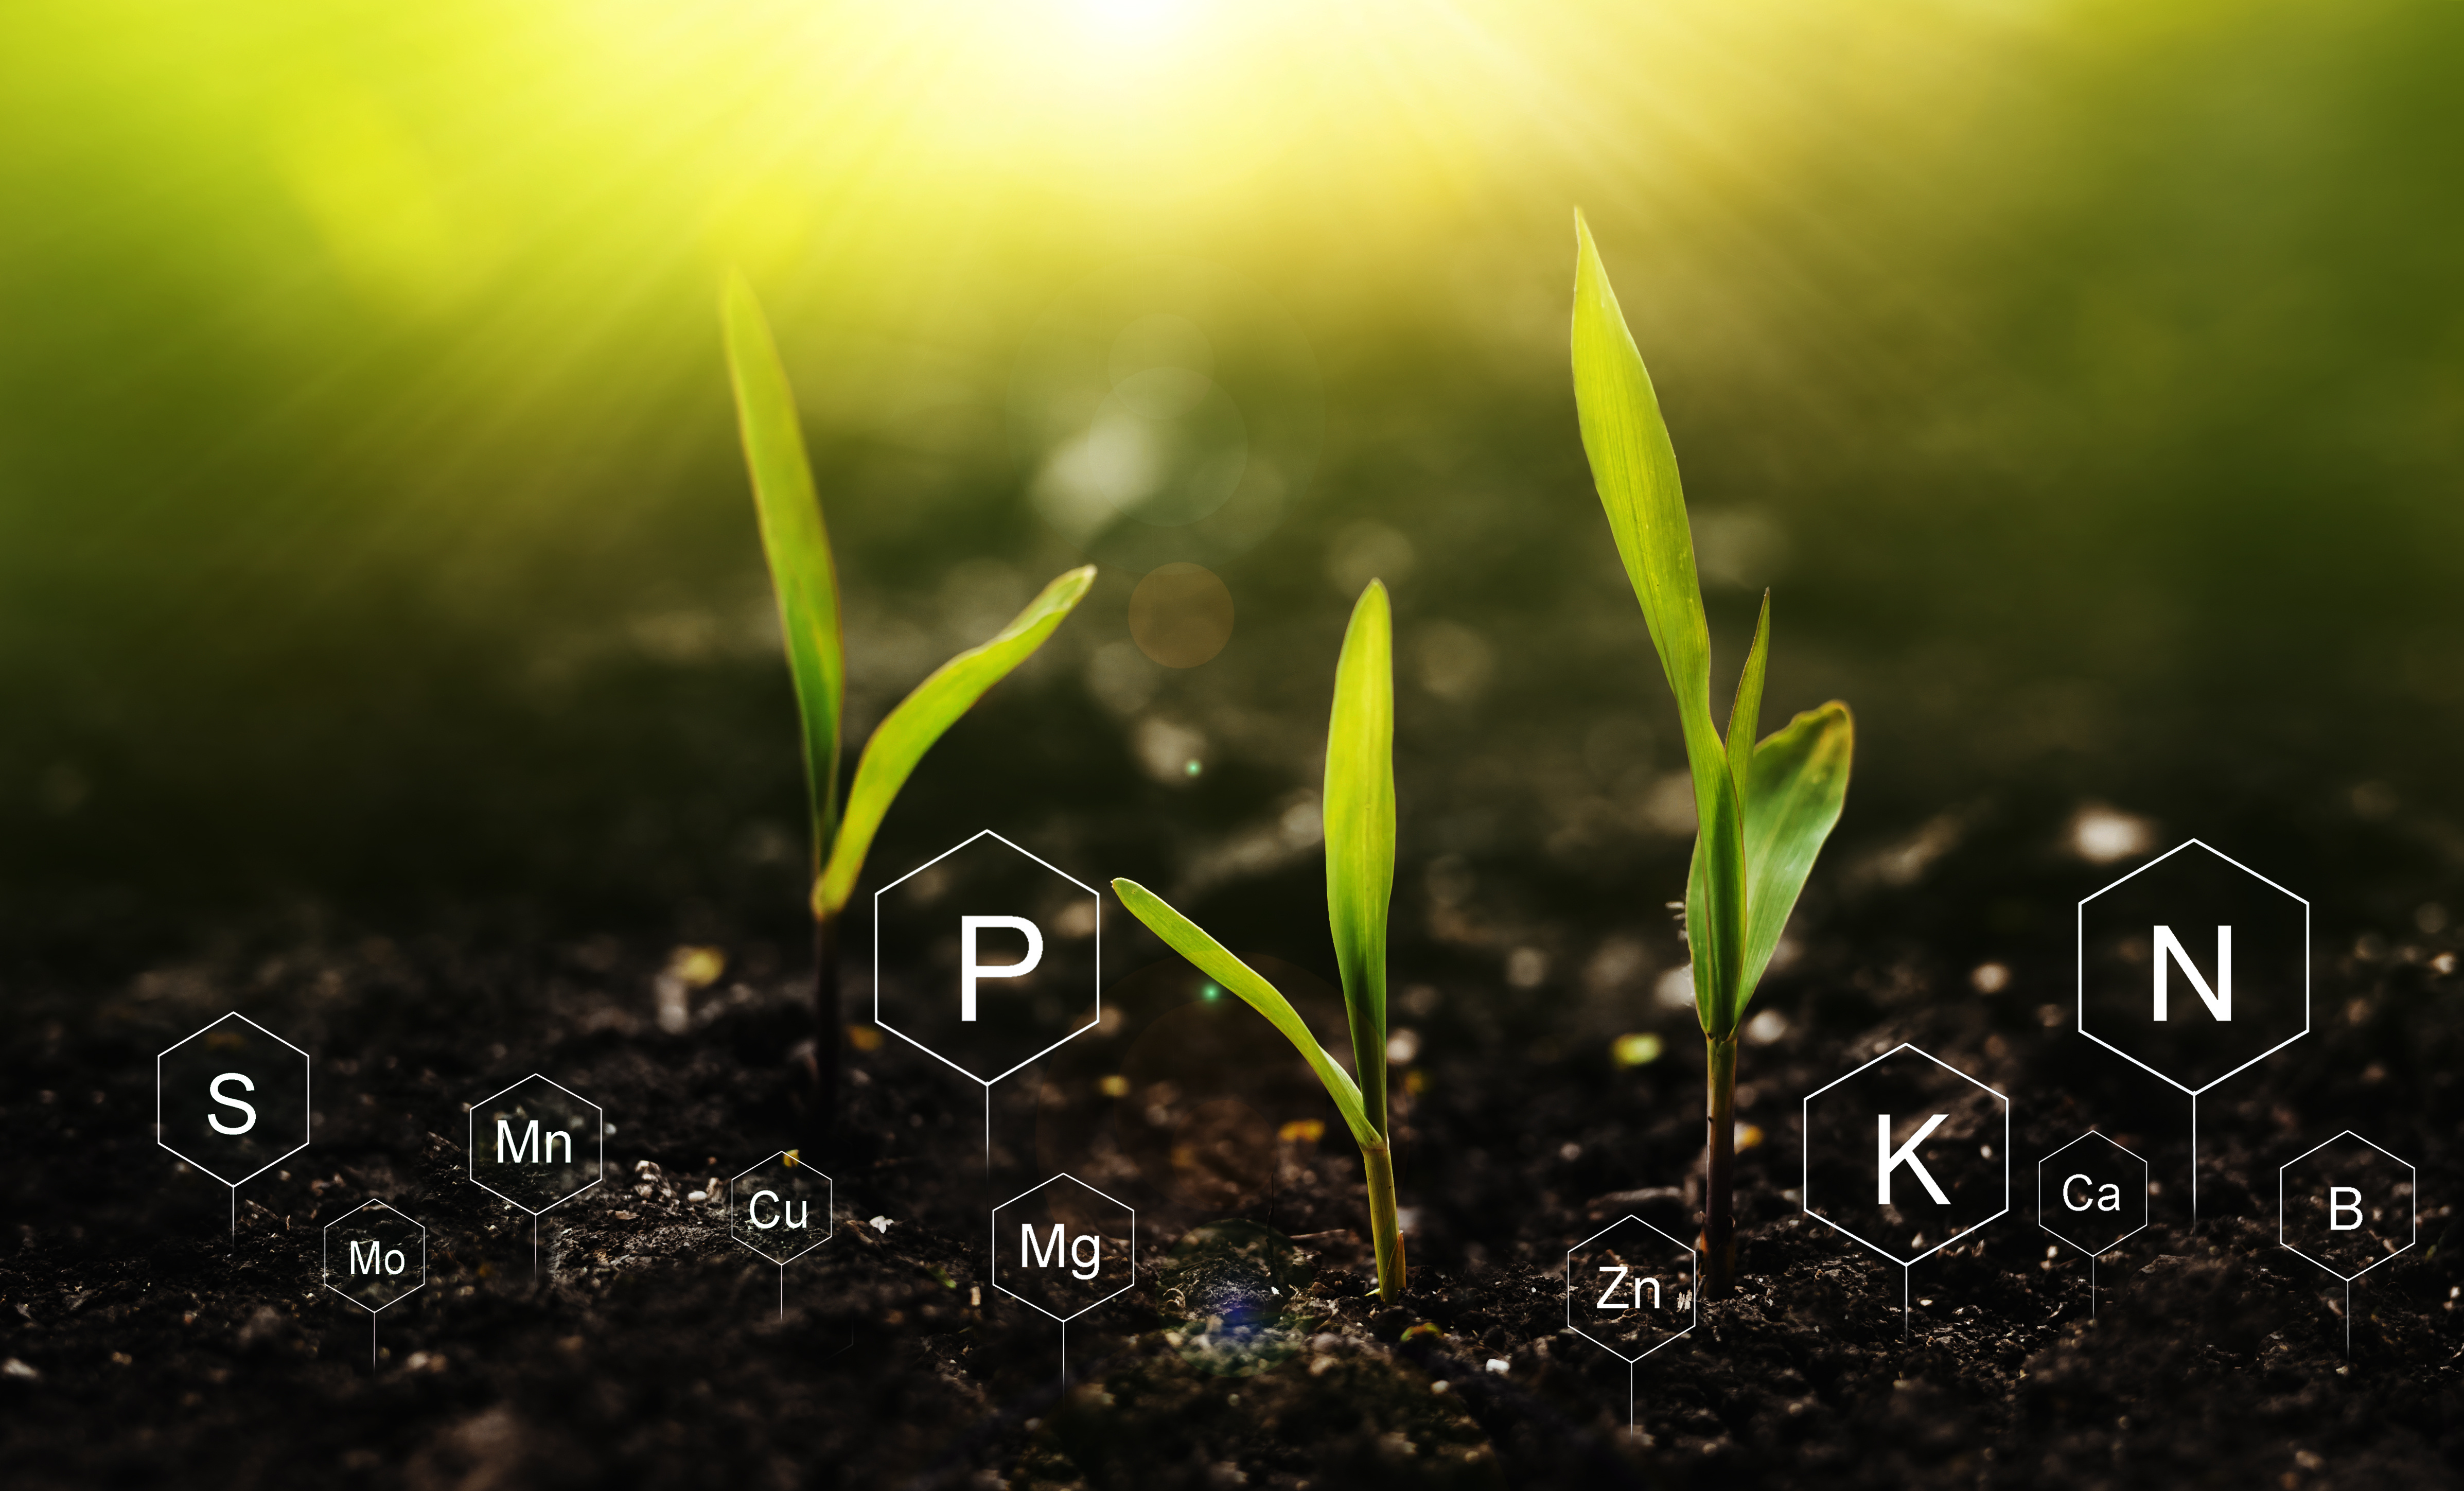 Young plants grow in soil with symbols of essential nutrients superimposed on the image